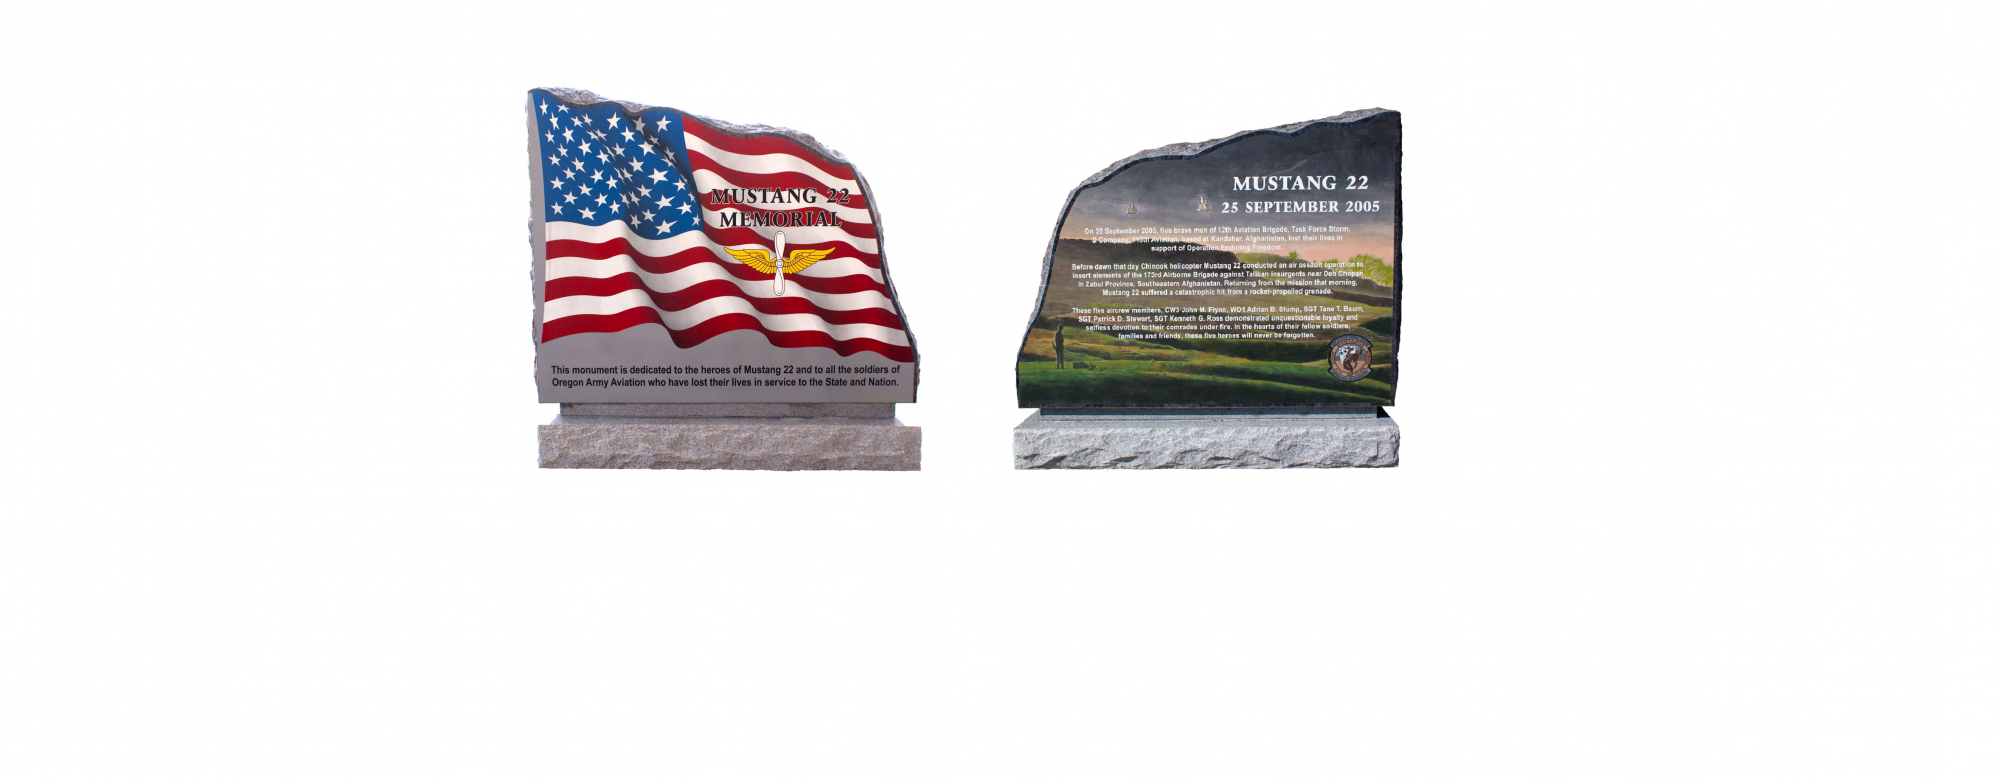 Images of Mustang 22 Memorials